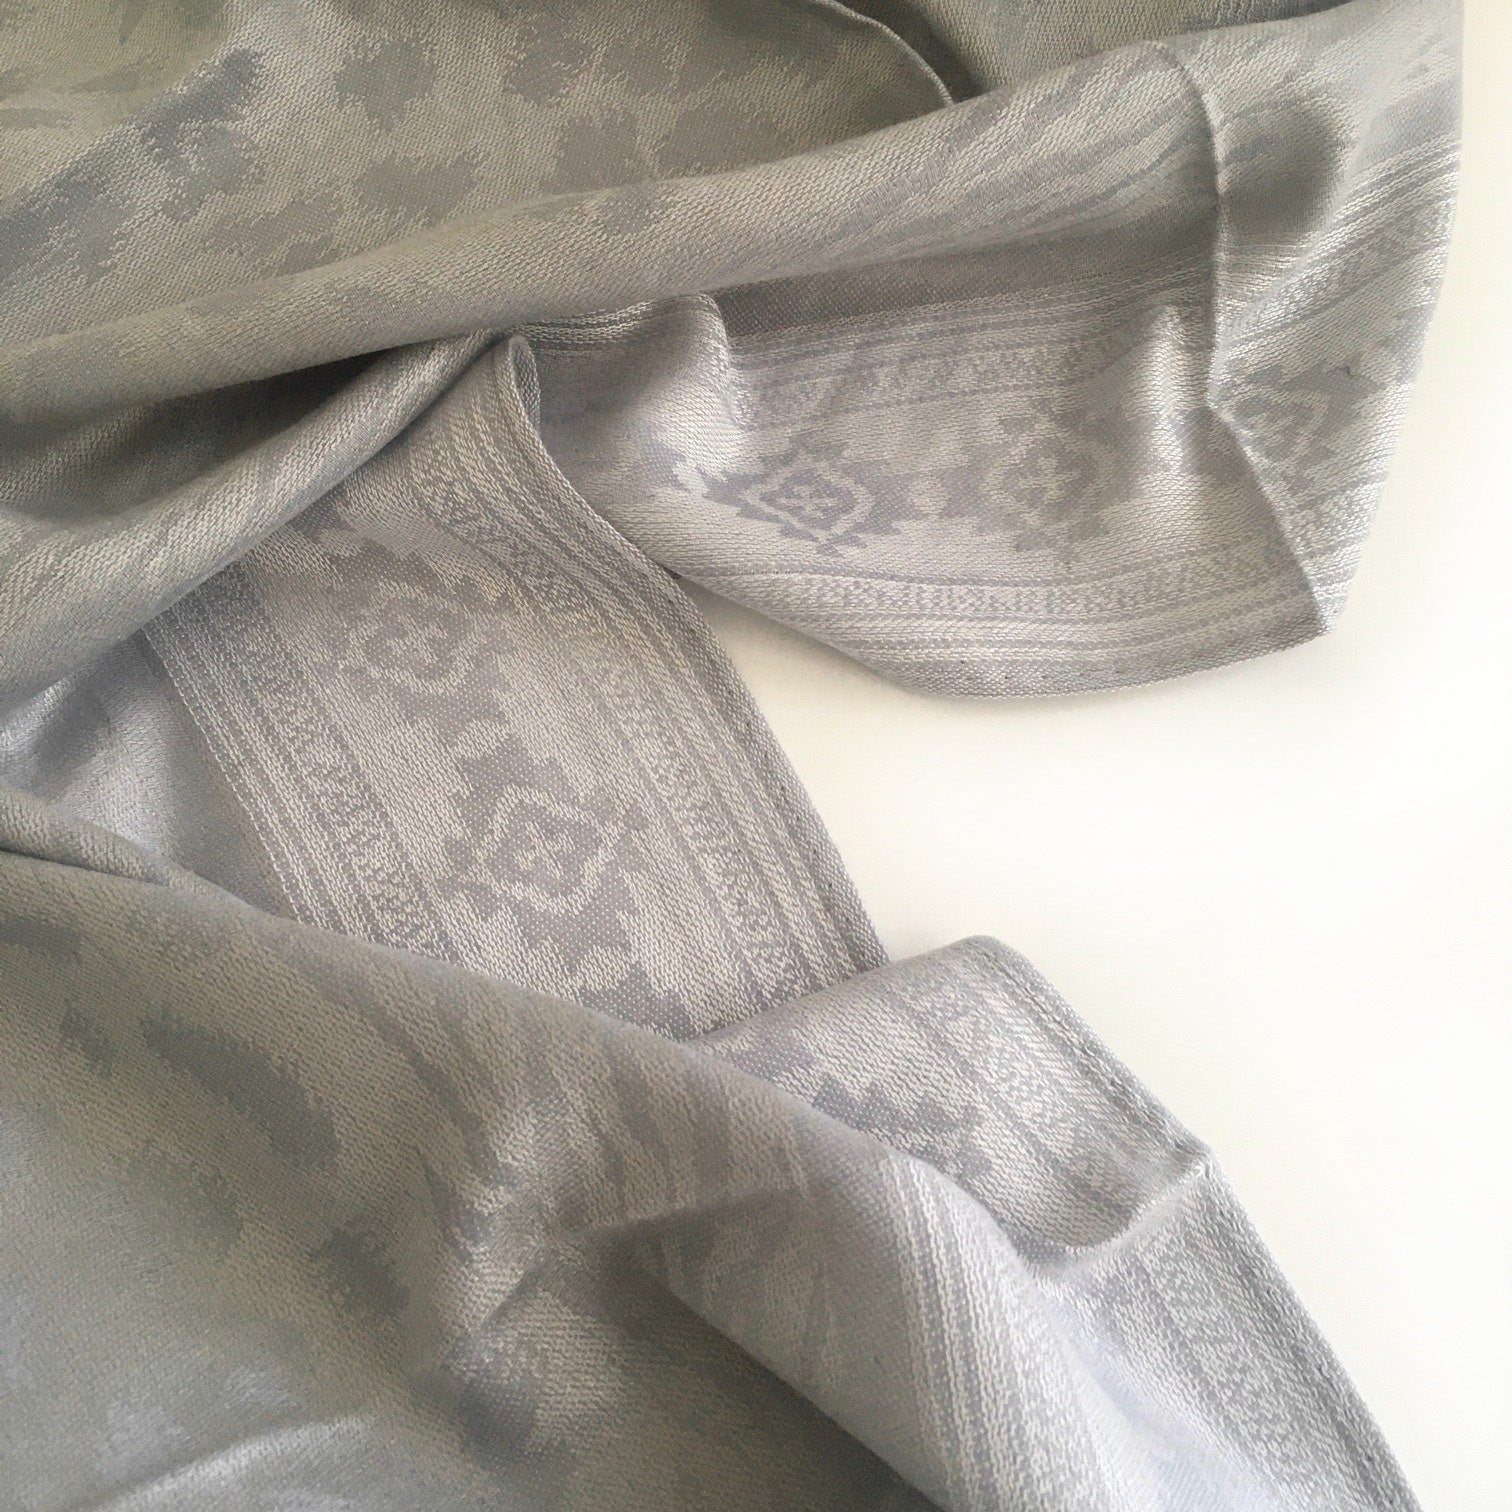 A-SHU SILVER GREY ANIMAL PRINT REVERSIBLE PASHMINA SHAWL SCARF - A-SHU.CO.UK